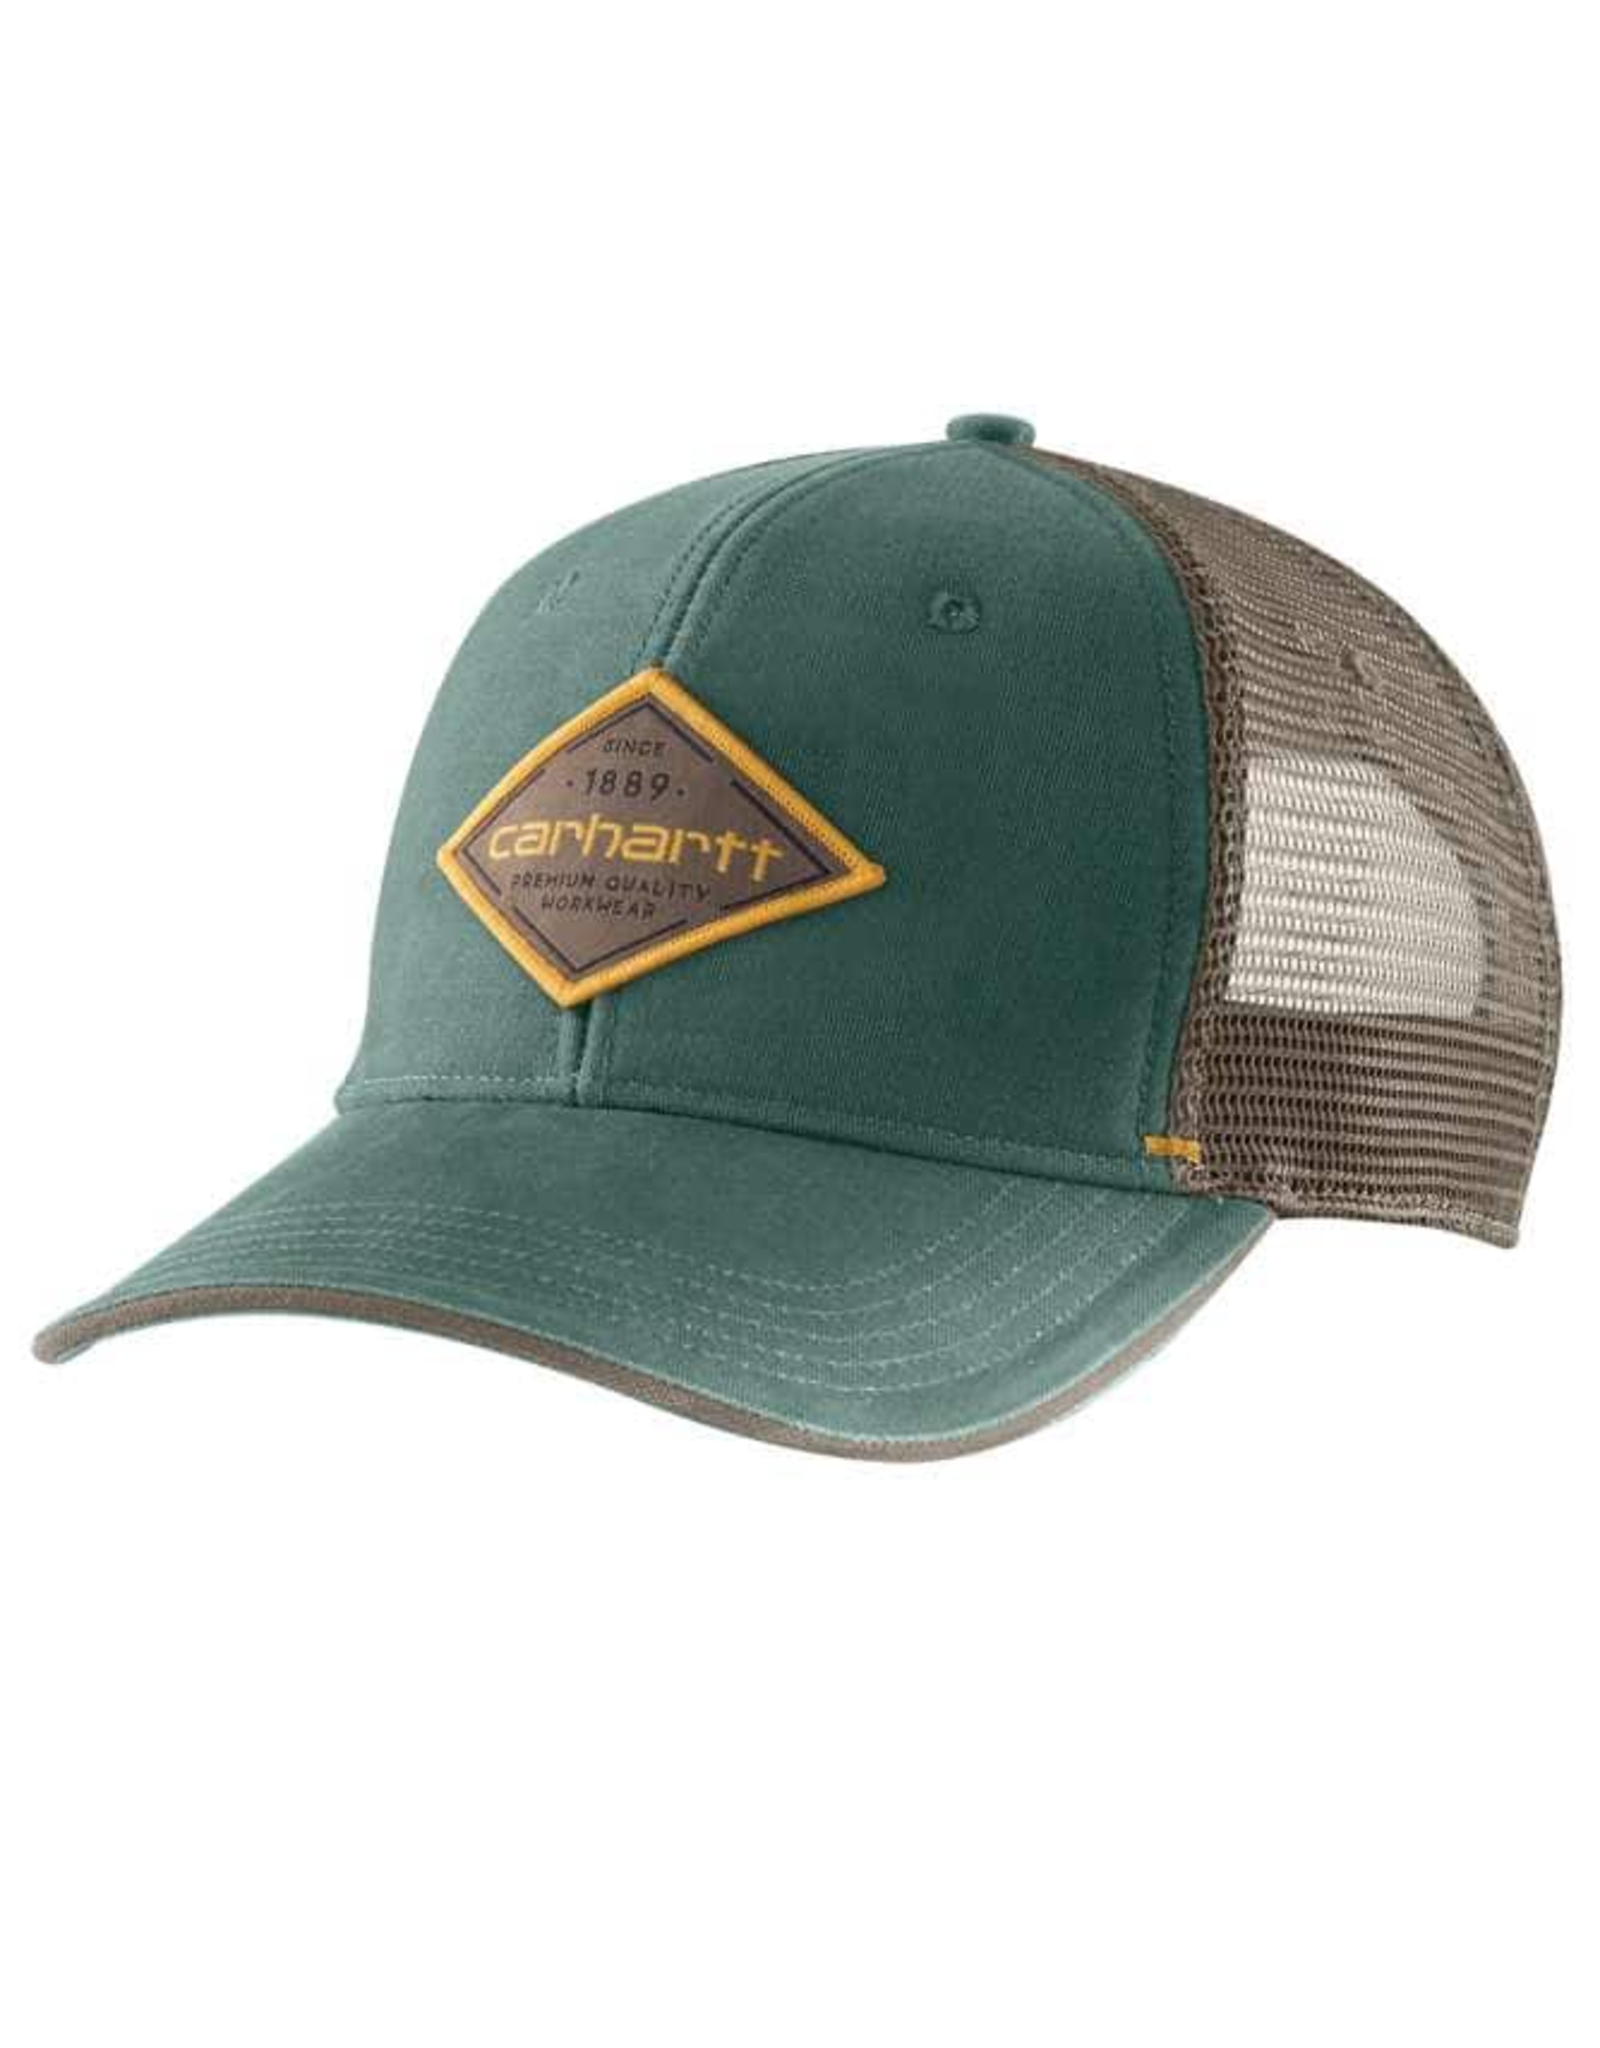 RUGGED FLEX® CANVAS MESH-BACK FITTED LOGO GRAPHIC CAP